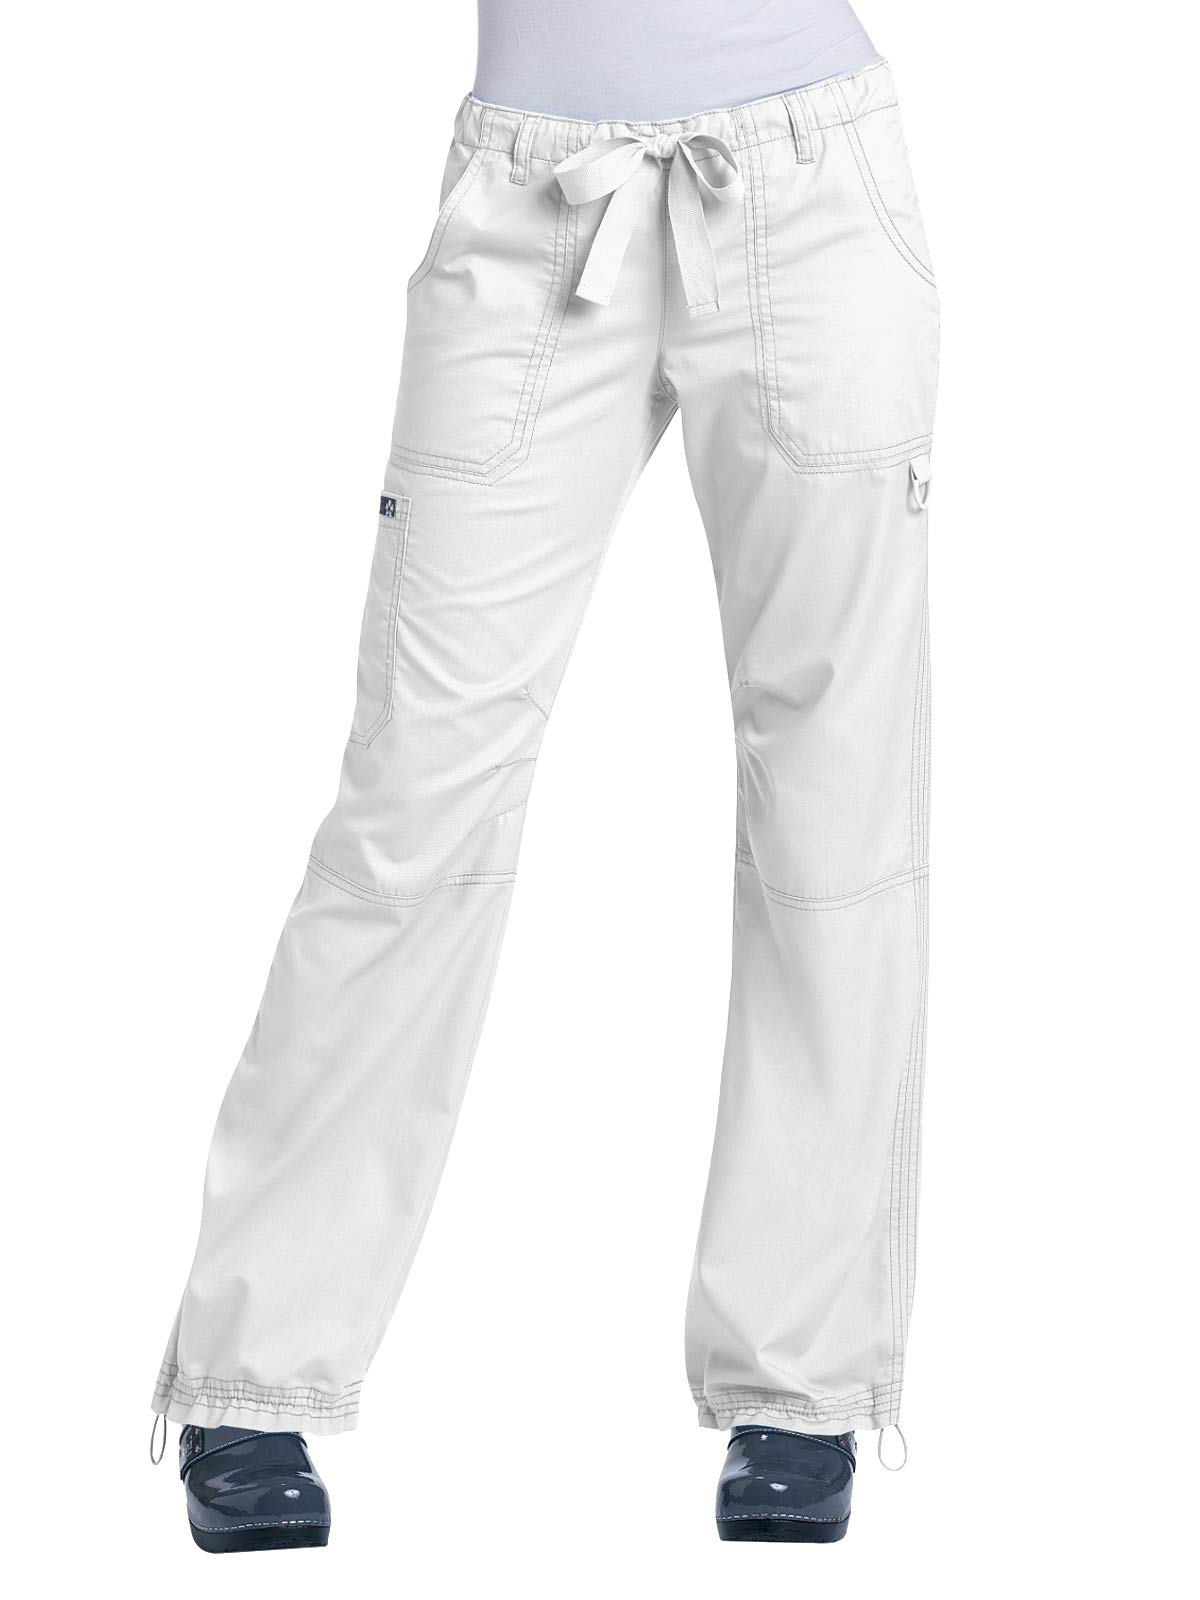 KOI Women's Lindsey Ultra Comfortable Cargo Style Scrub Pants, White, X-Large by KOI